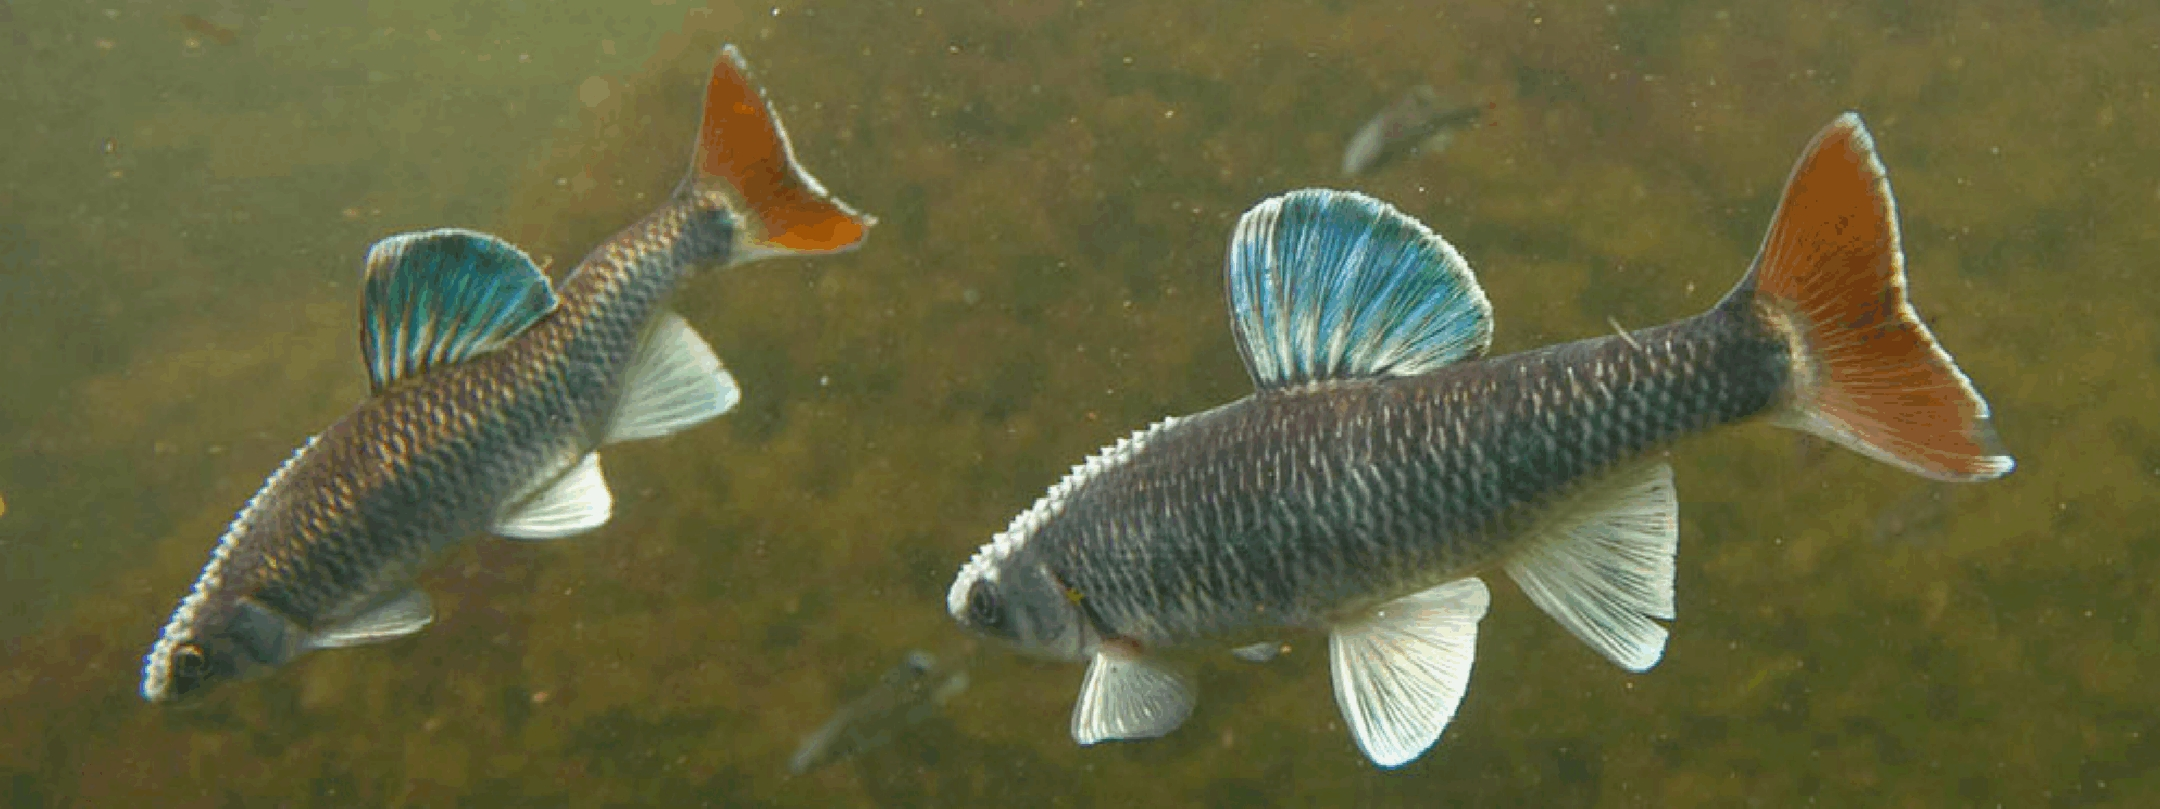 two small fish with blue and orange fins